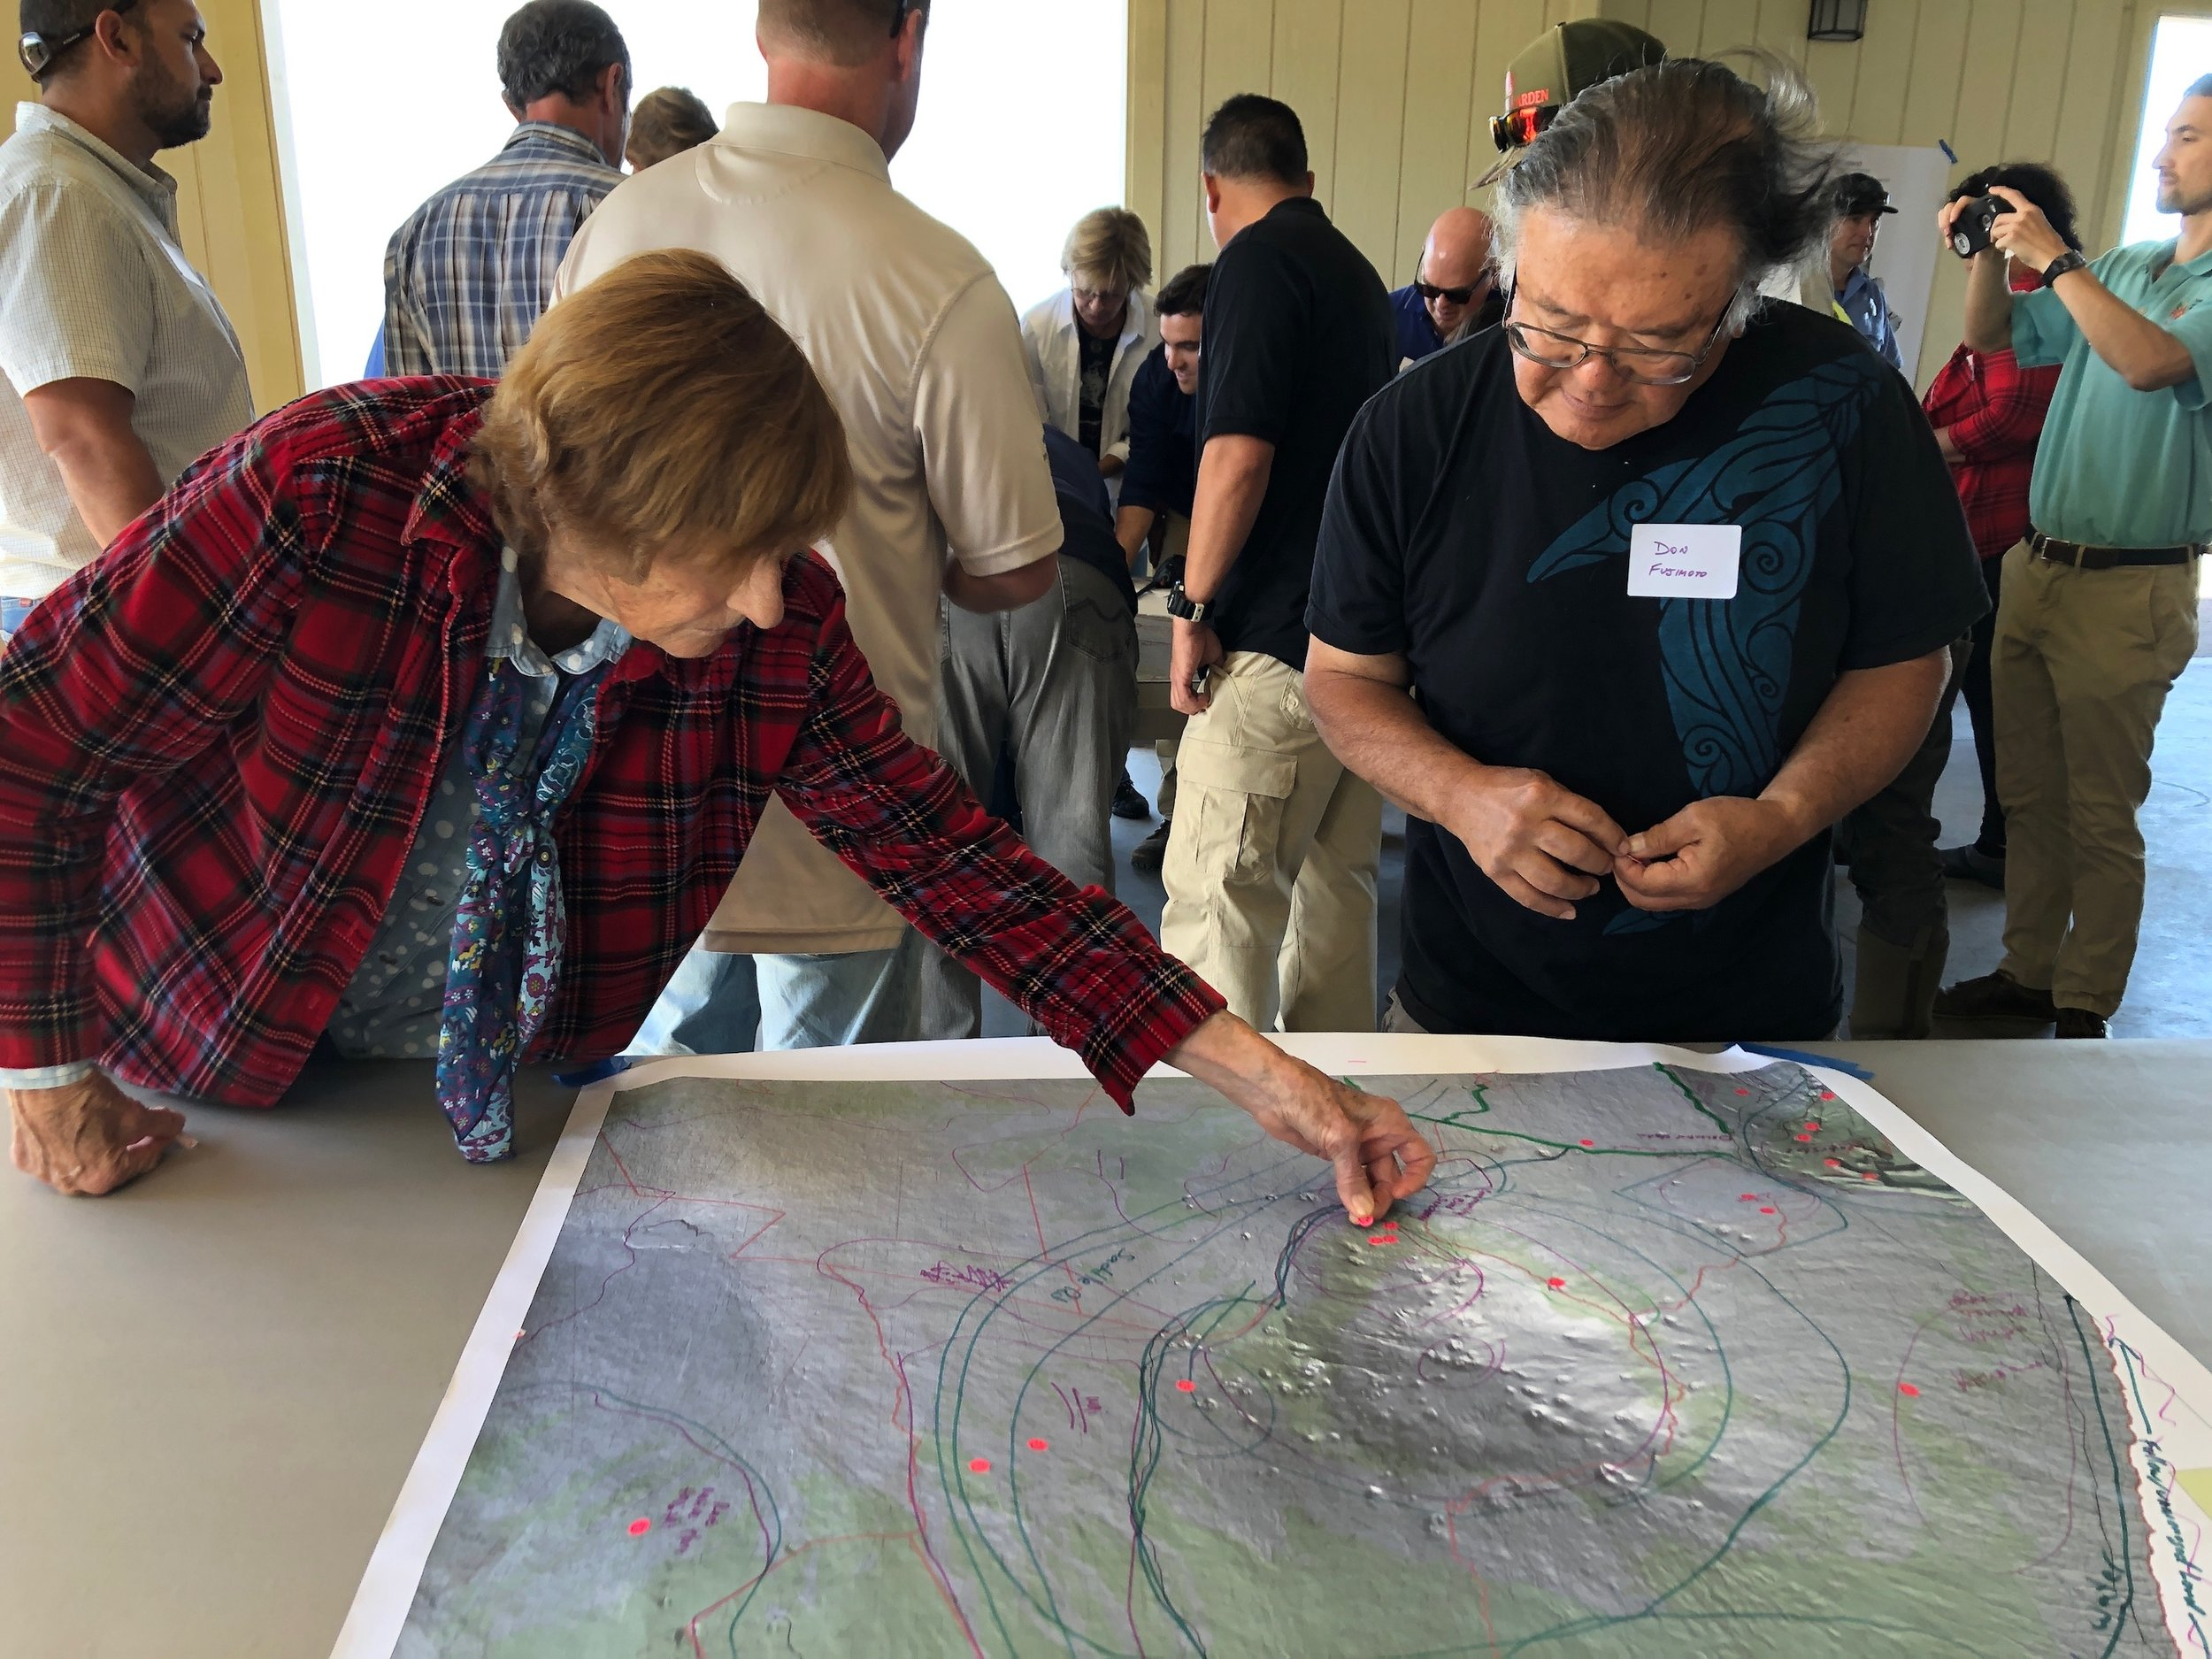 Hawaii Island Kailapa Vegetative Fuels Management Collaborative Action Planning Workshop_2_26_2019_45.jpg